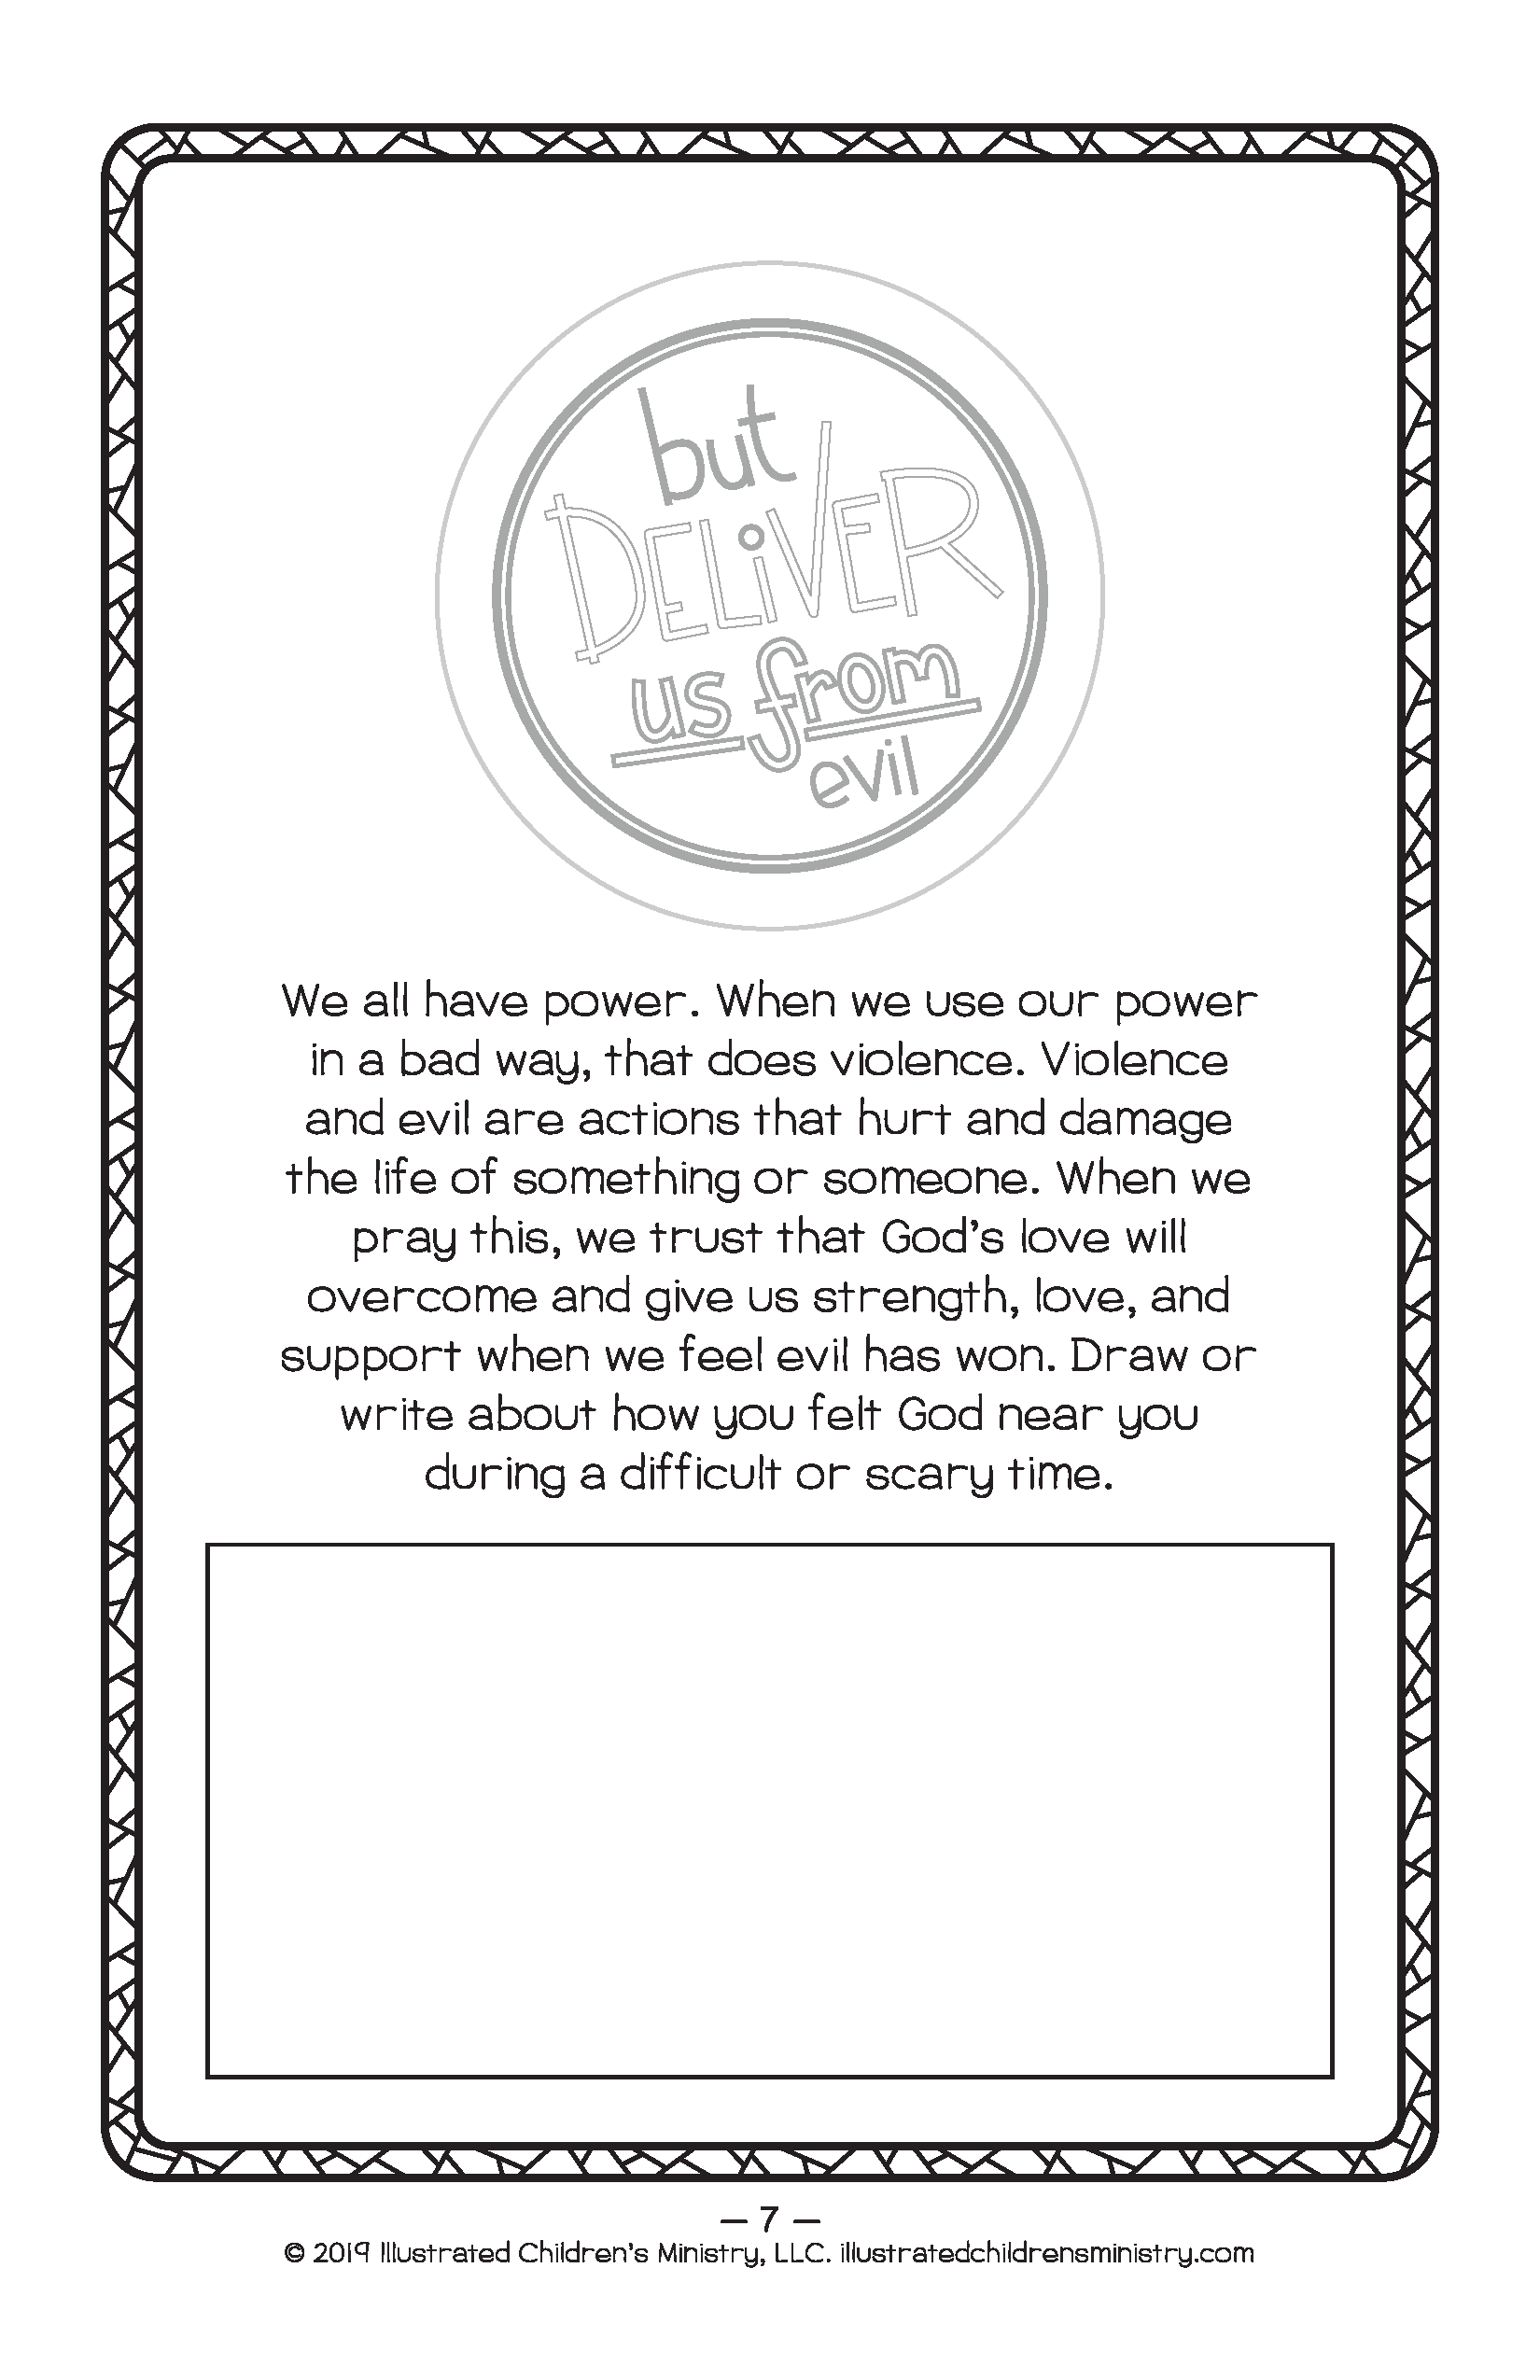 Children's prayer booklet